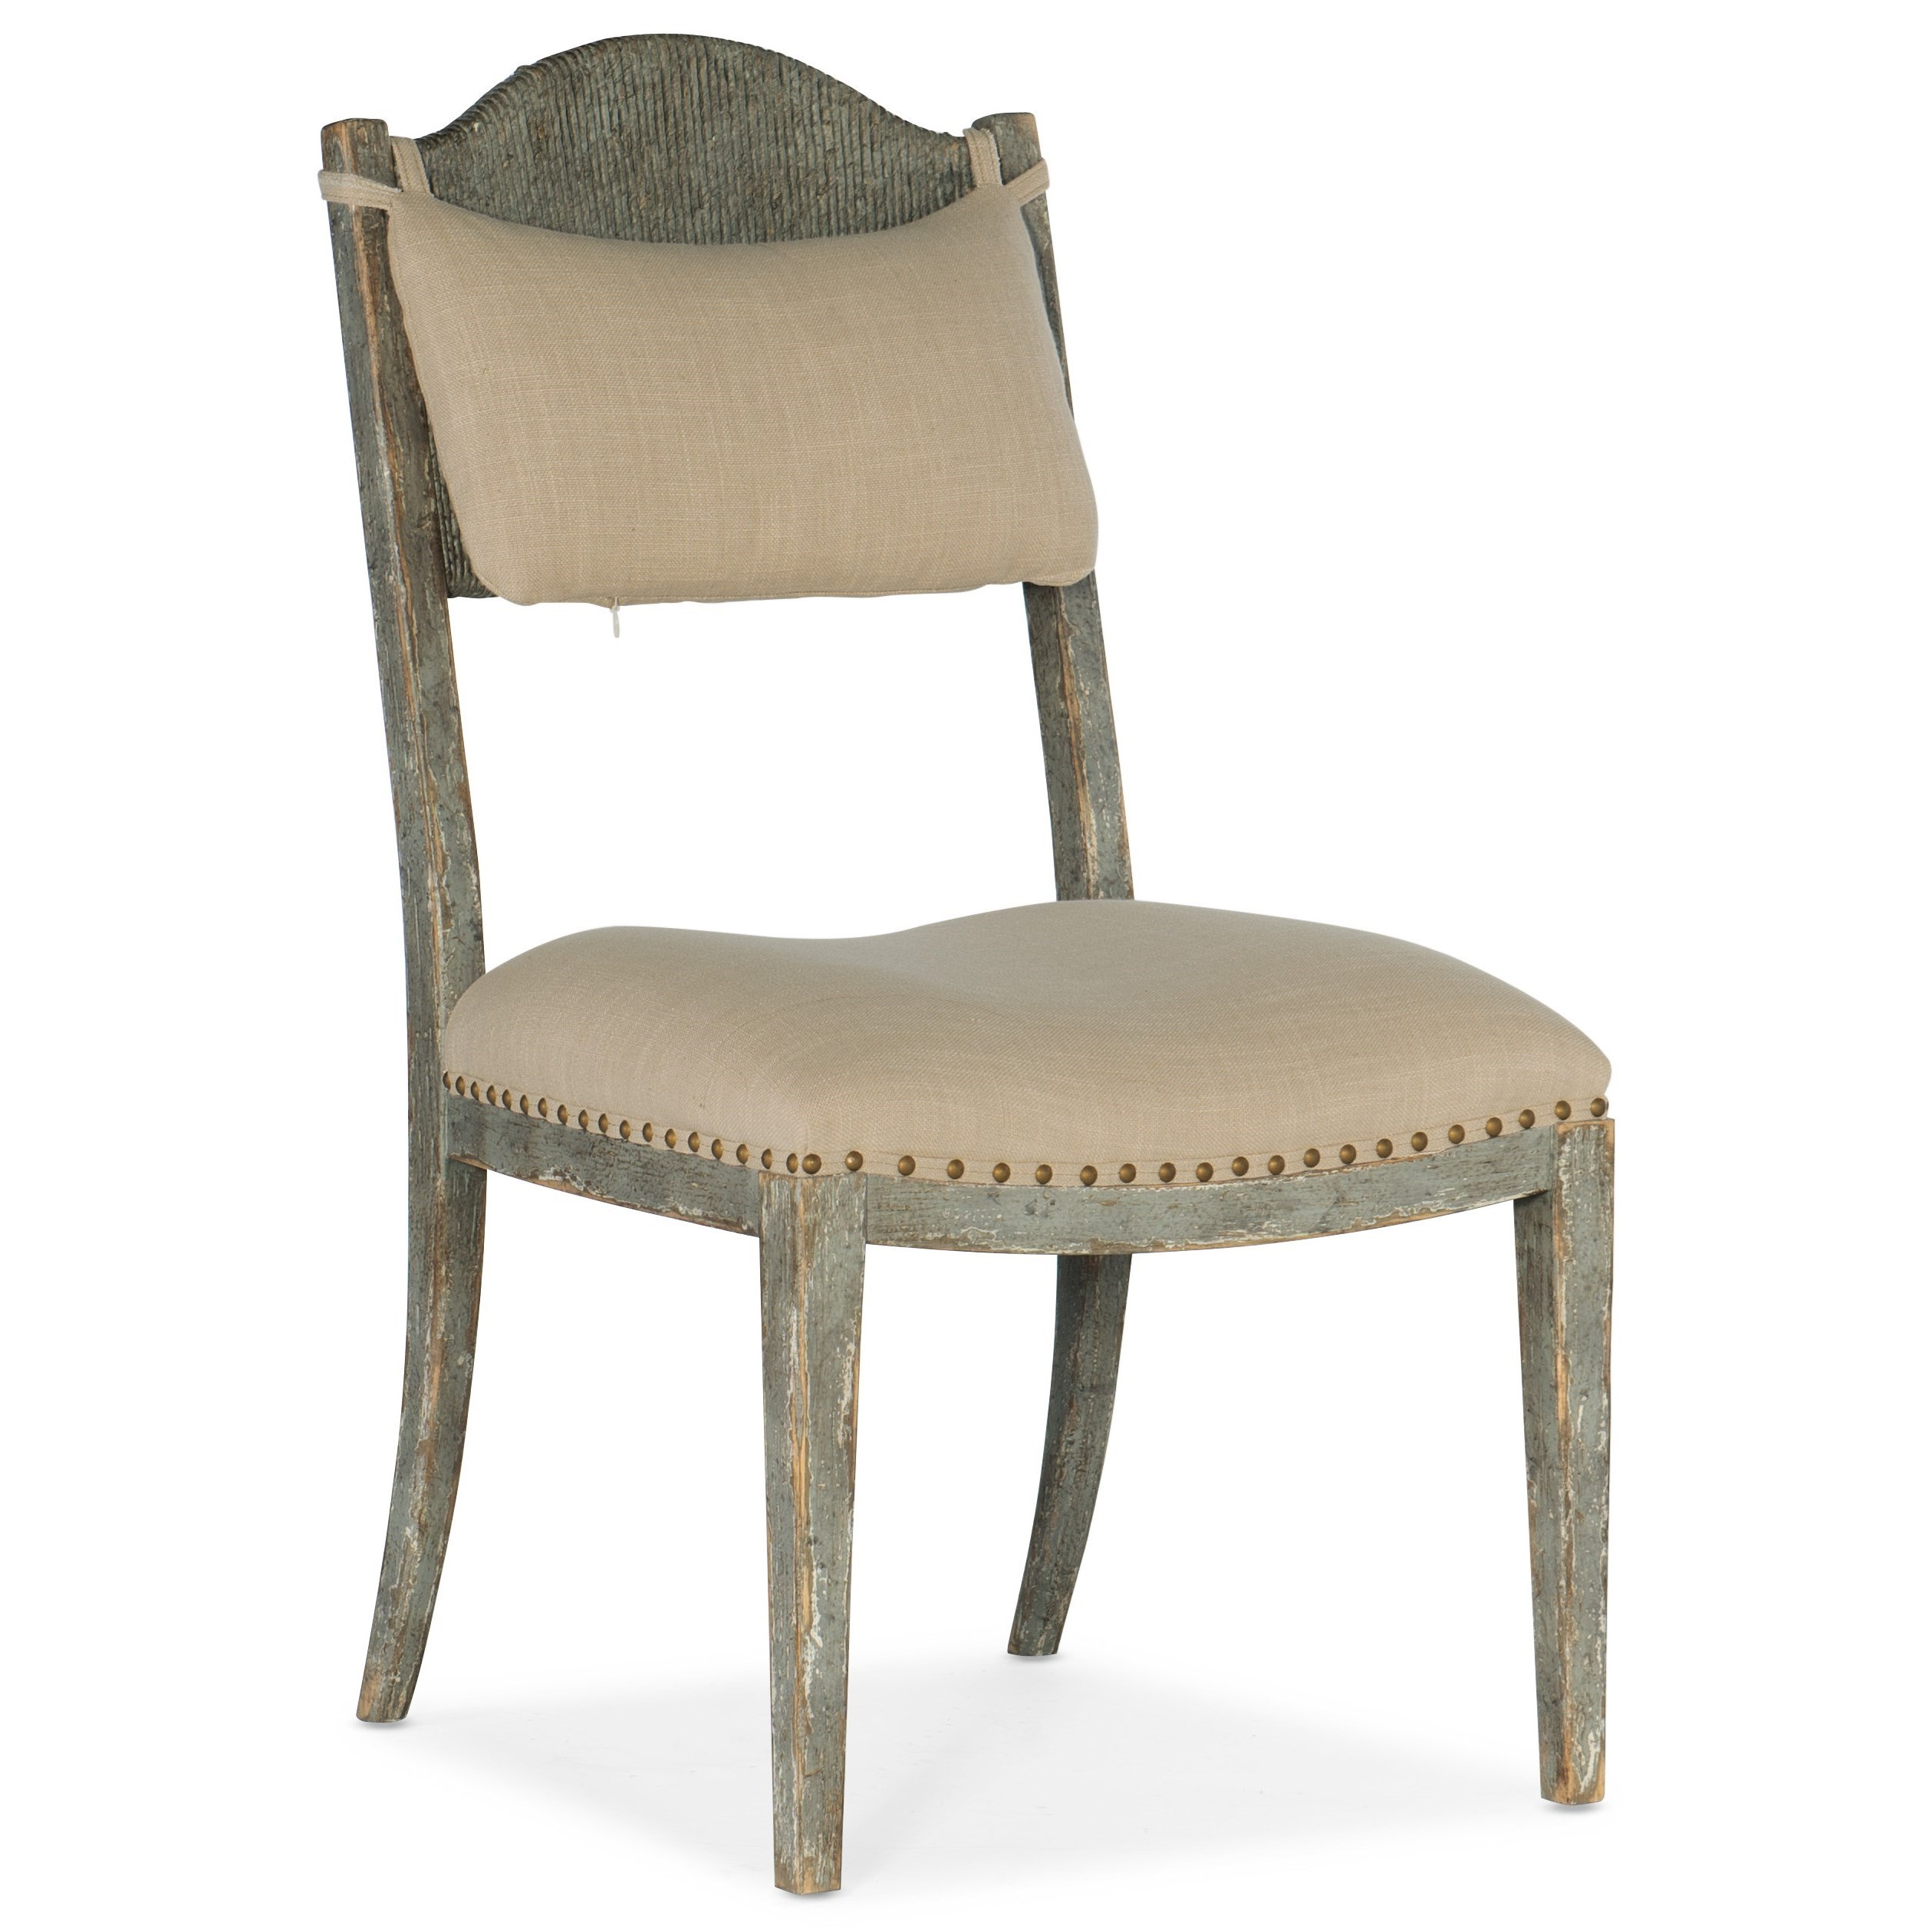 Alfresco Aperto Rush Side Chair by Hooker Furniture at Alison Craig Home Furnishings